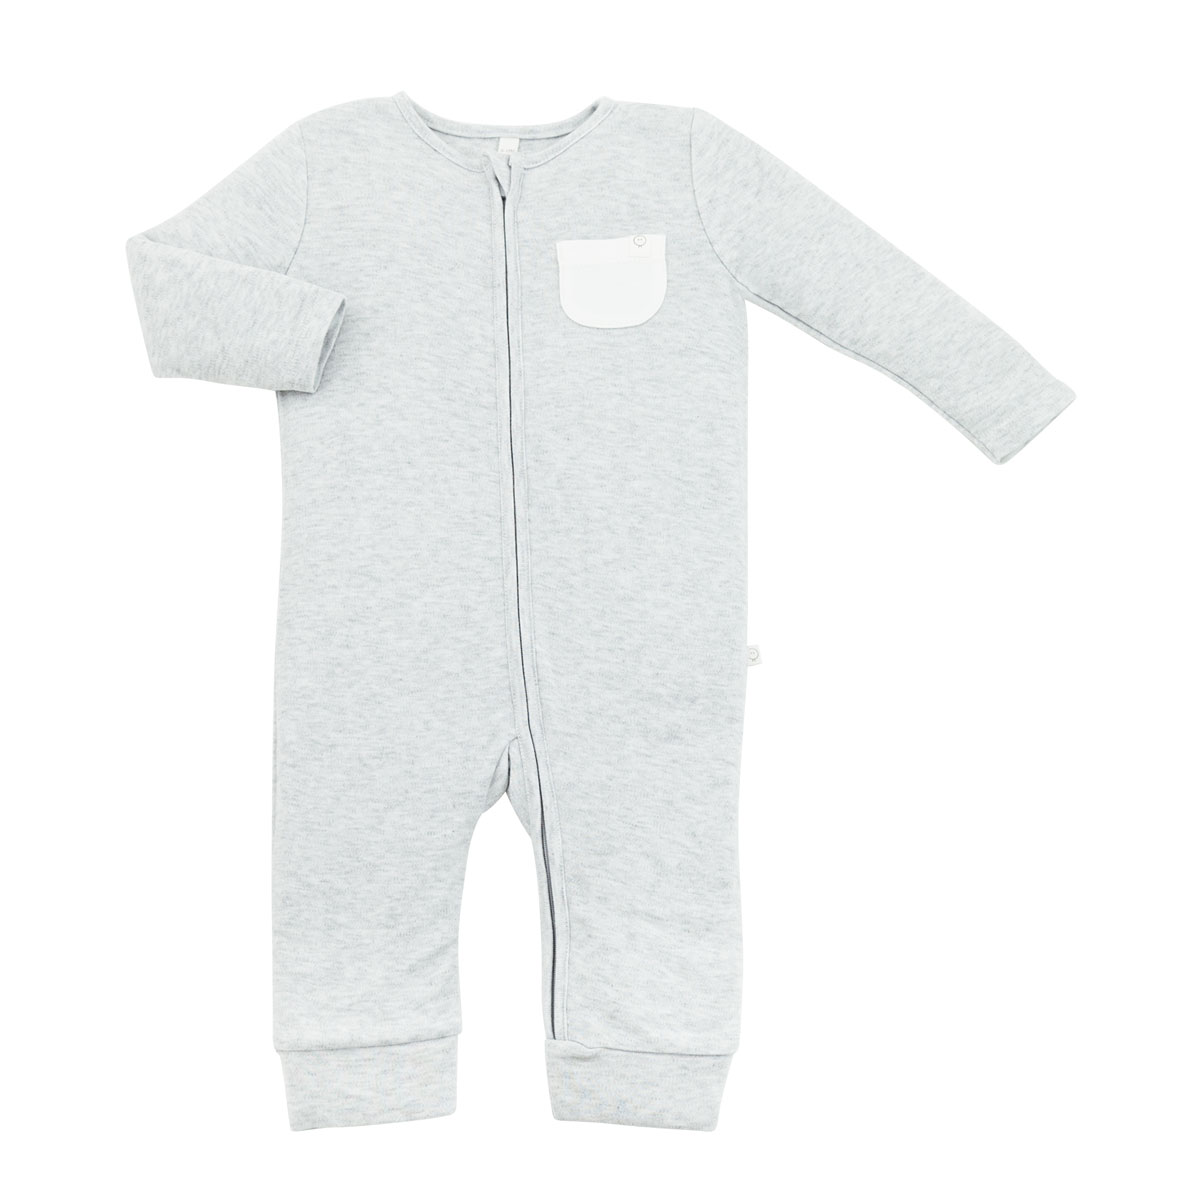 30/% Organic Cotton /& 70/% Bamboo MORI Zip-Up Sleepsuit available from newborn up to 2 years 18-24 Months, Stardust